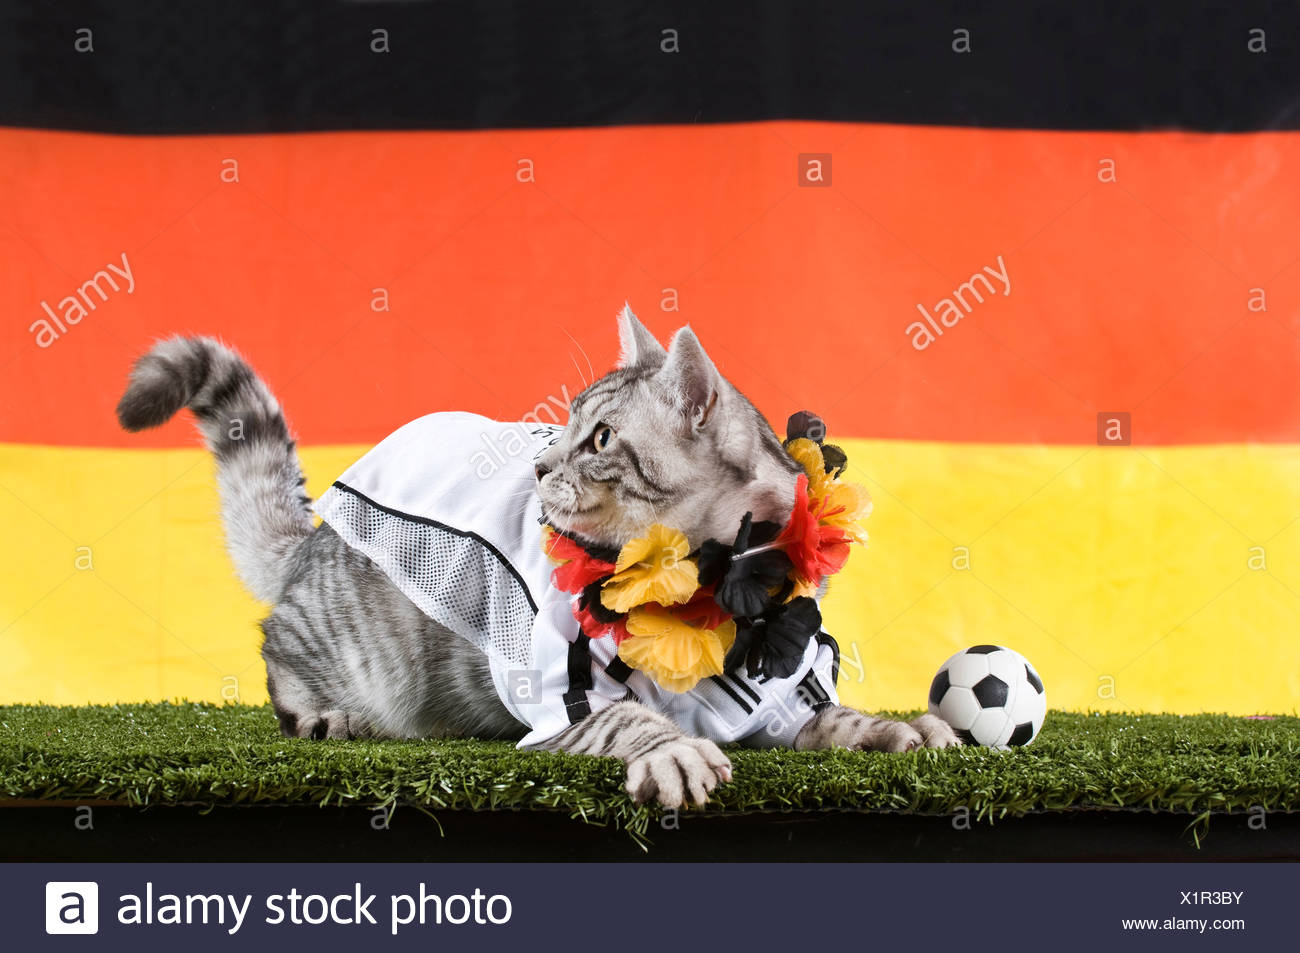 96480d36d Domestic Cat. Tabby adult dressed in the jersey of the German National  Football Team with football and garland in the Germen nat